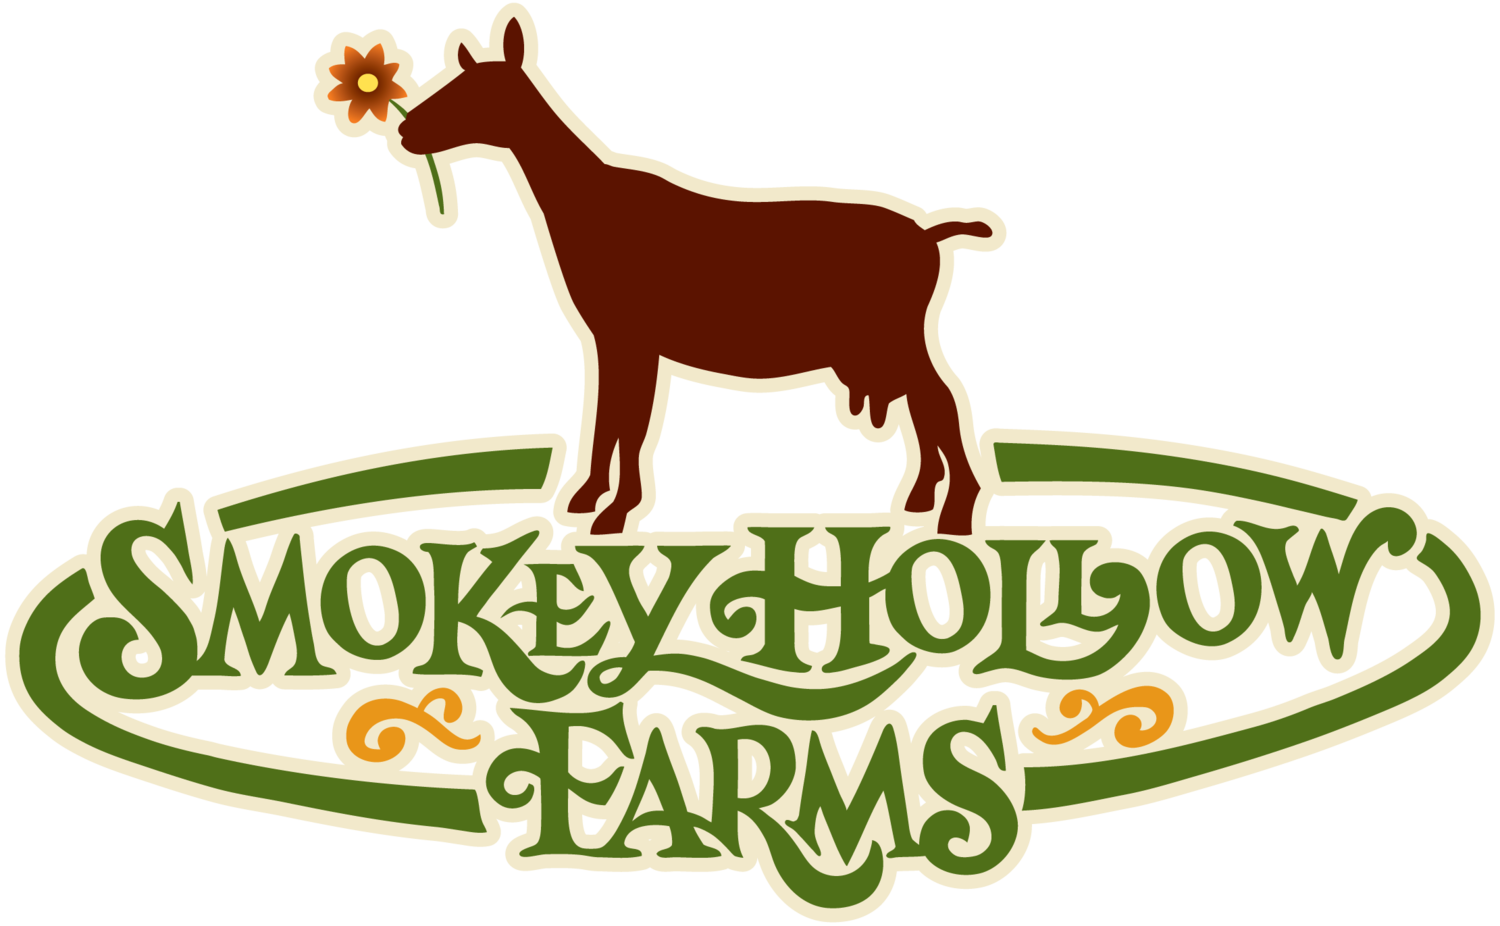 Smokey Hollow Farms